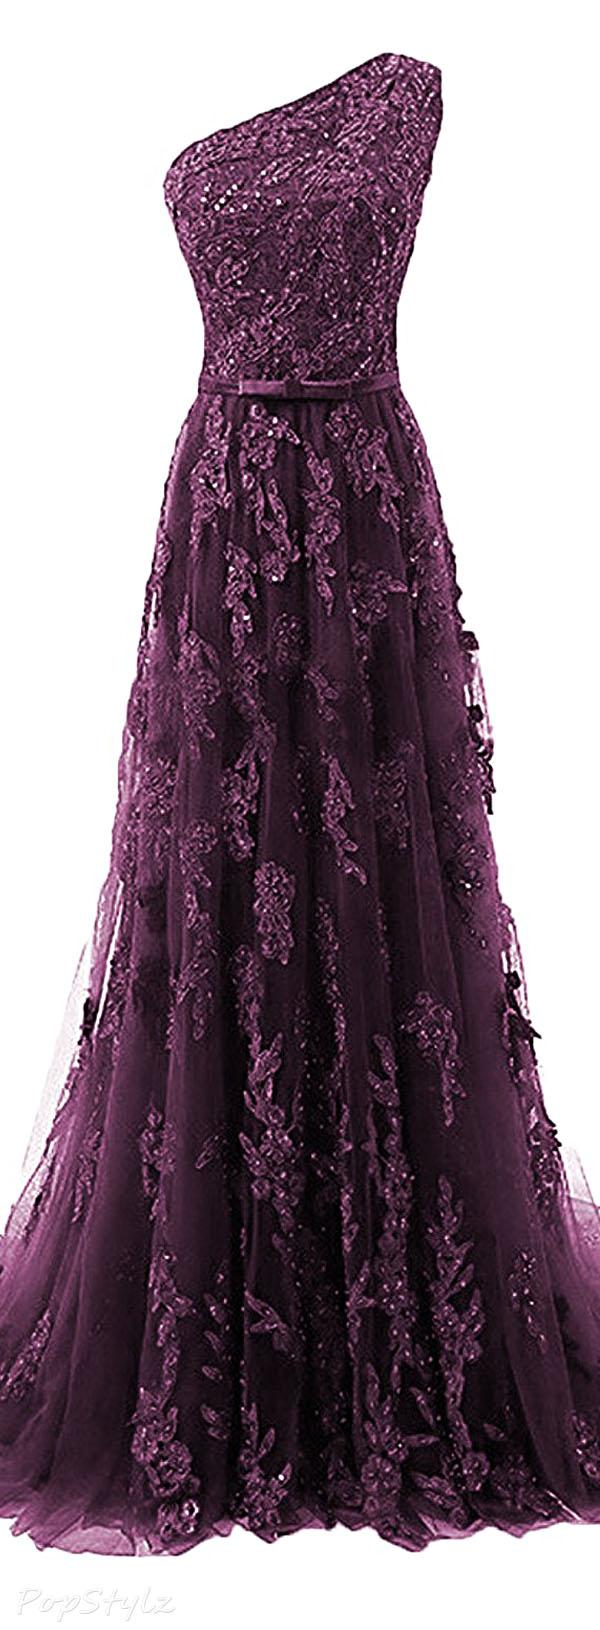 Himoda Beads & Lace Appliqued Evening Gown